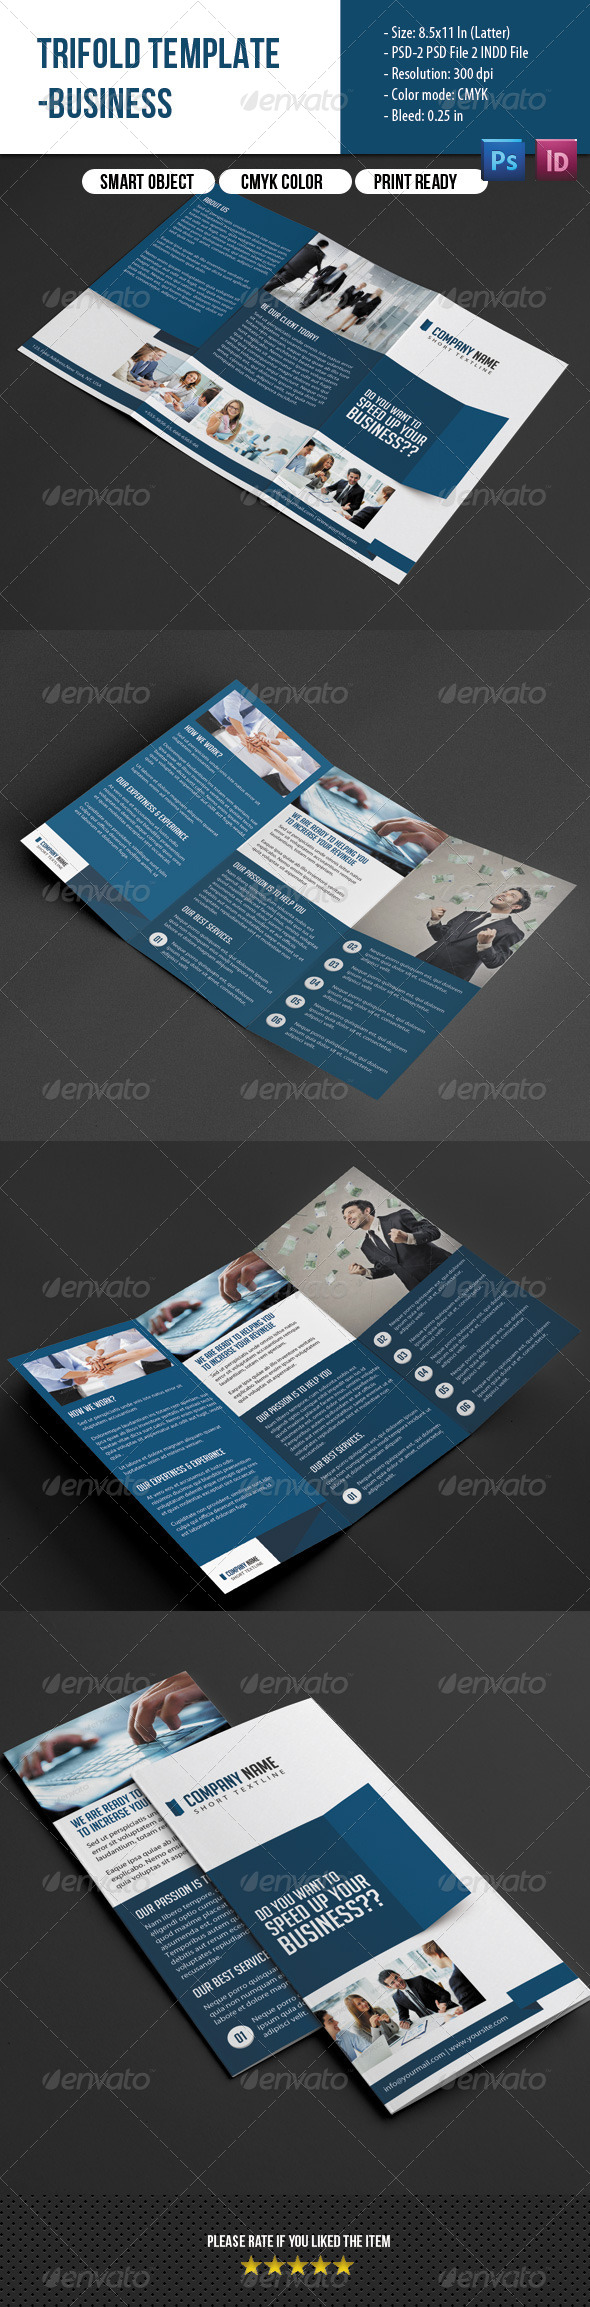 GraphicRiver Trifold Brochure-Business 7423237